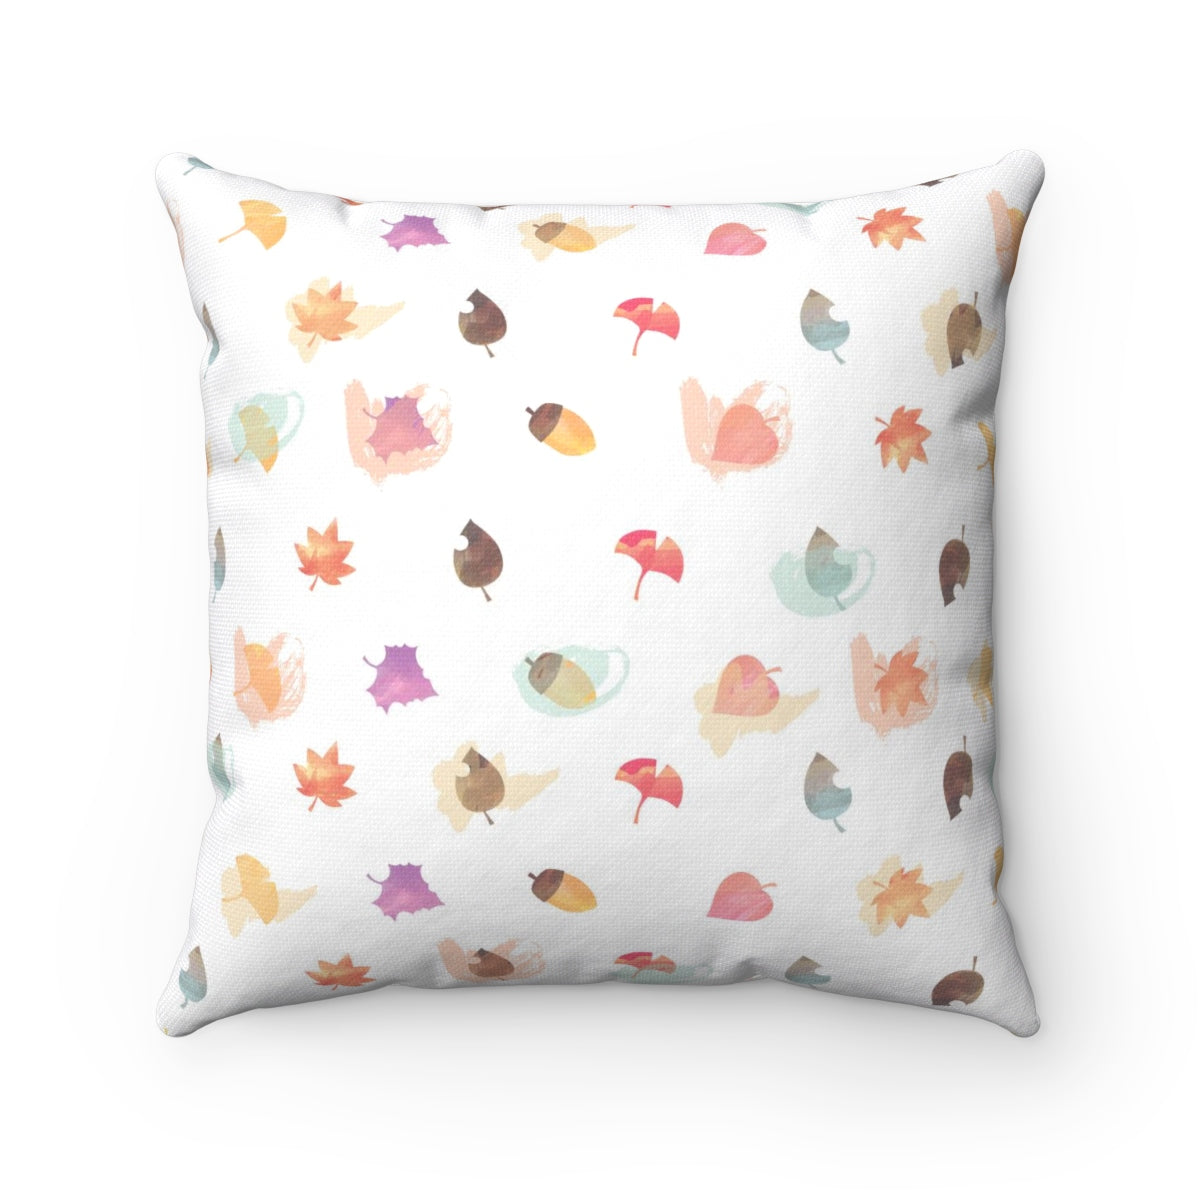 It's Fall Ya'll Brown Spun Polyester Square Pillow Case